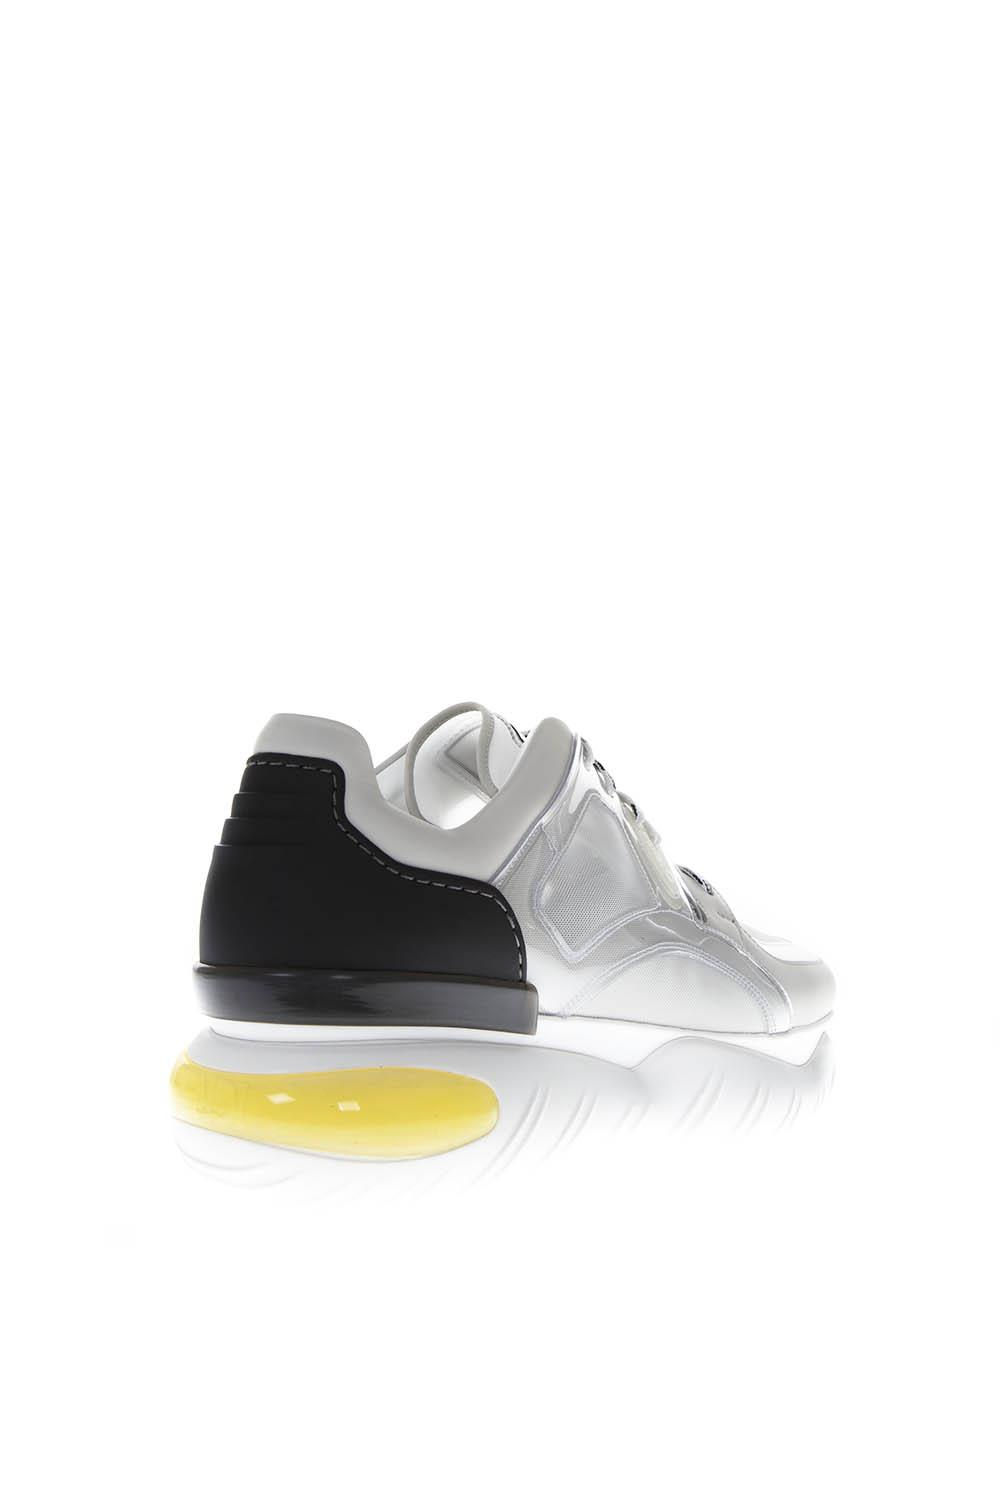 half off d31f3 67ef0 WHITE/BLACK TECHNICAL MESH AND LEATHER SNEAKERS FW 2018